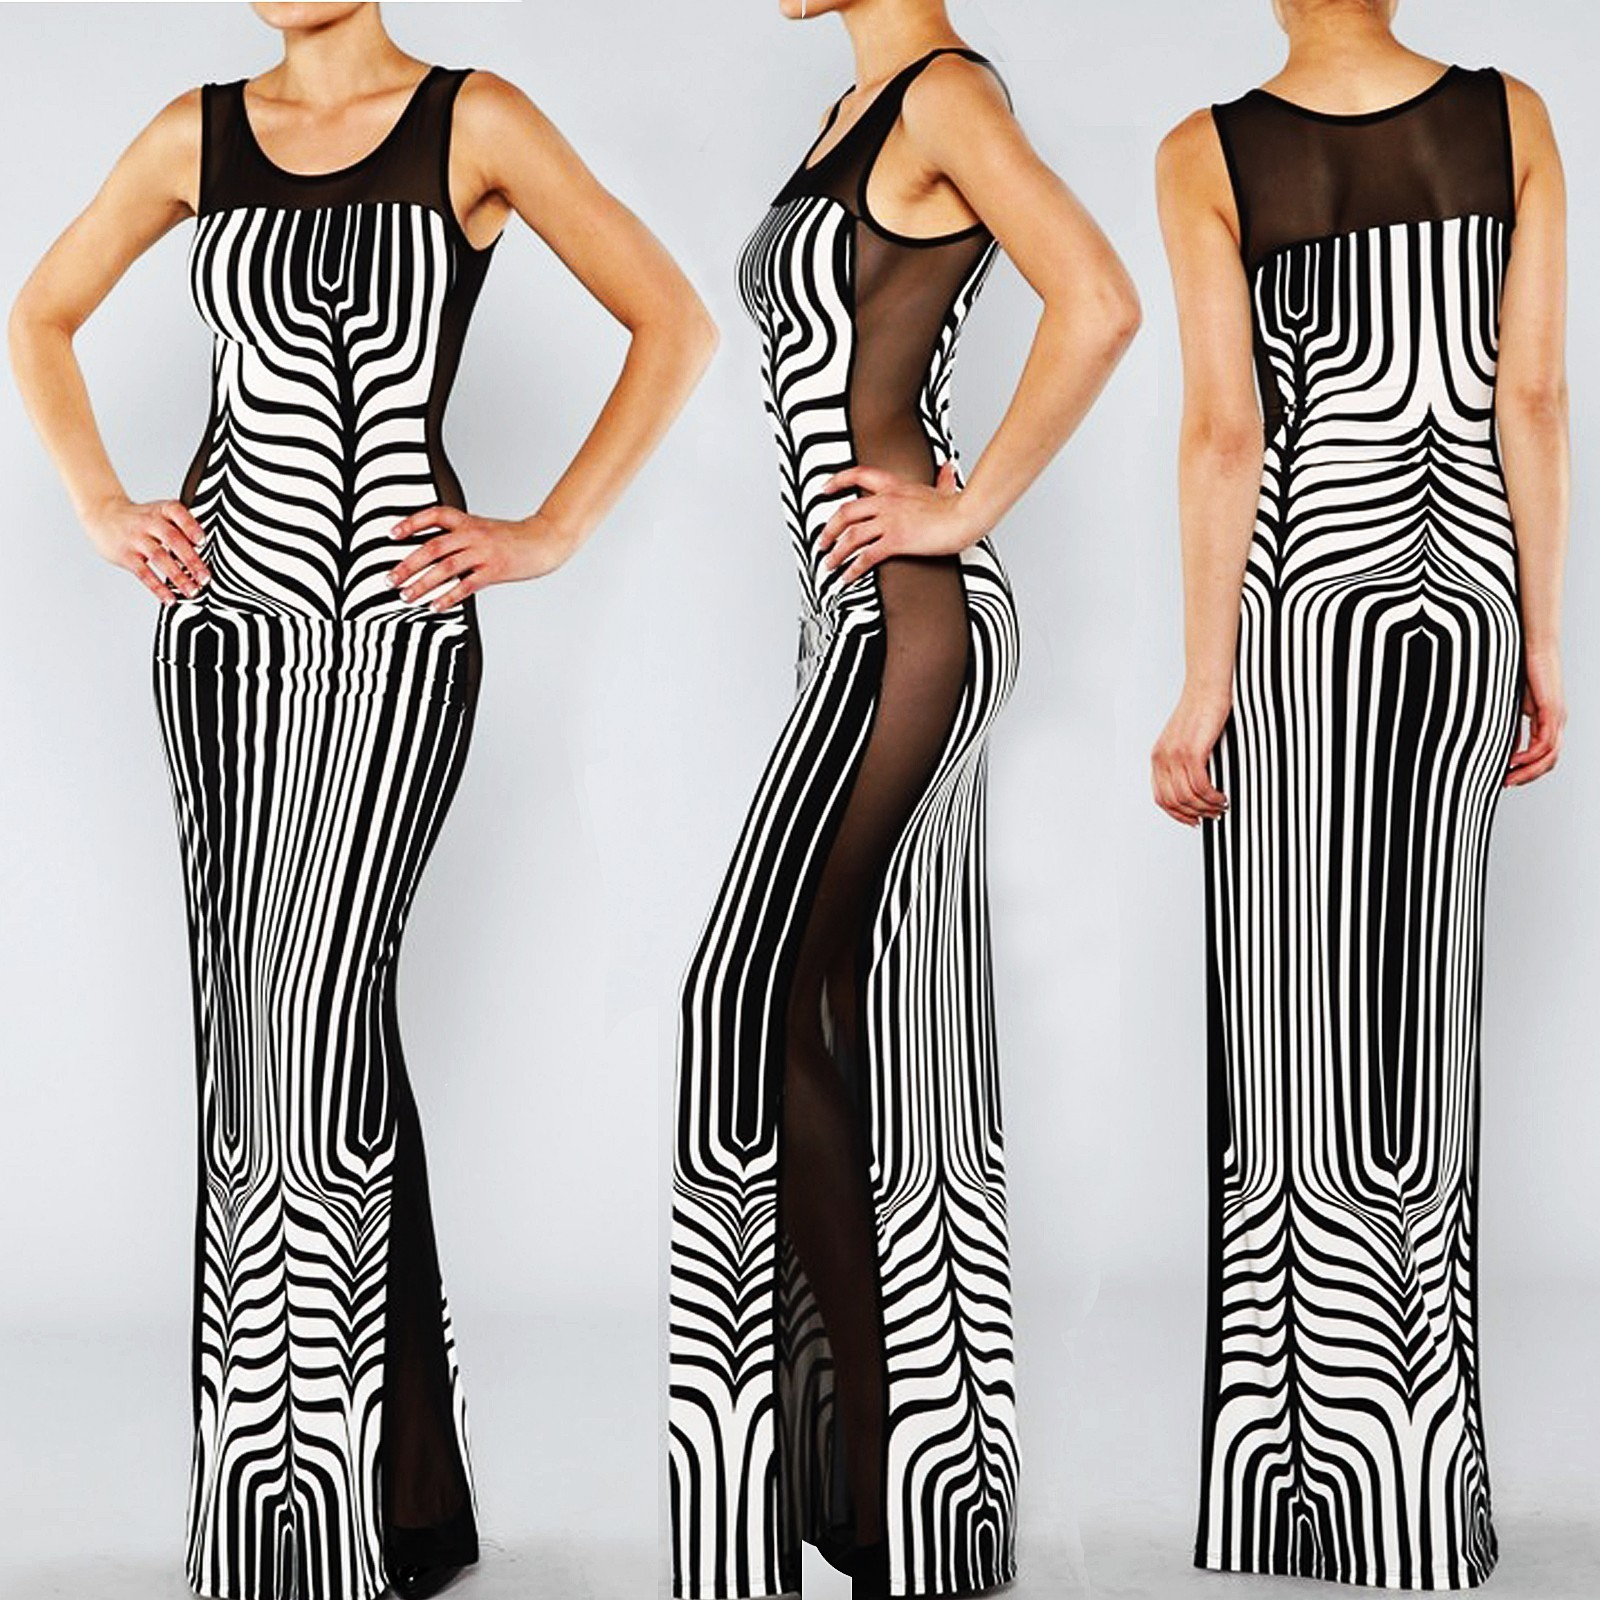 EXOTIC CHEVRON ZEBRA Art Print Sheer MESH Black White Sexy BodyCon Maxi Dress L - Dresses